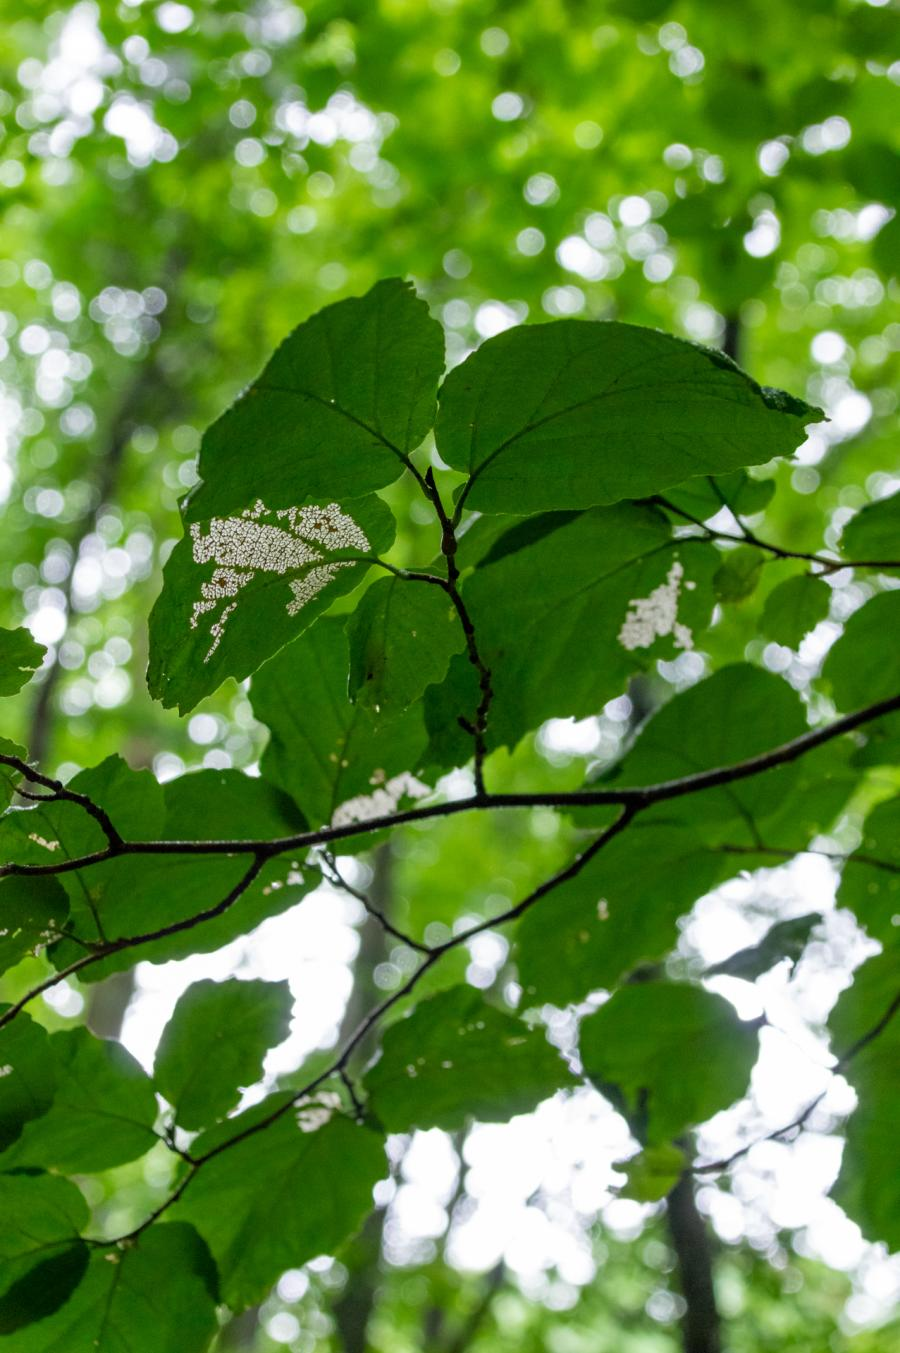 Keel Mountain Green Tree Leaves Eaten By Insects